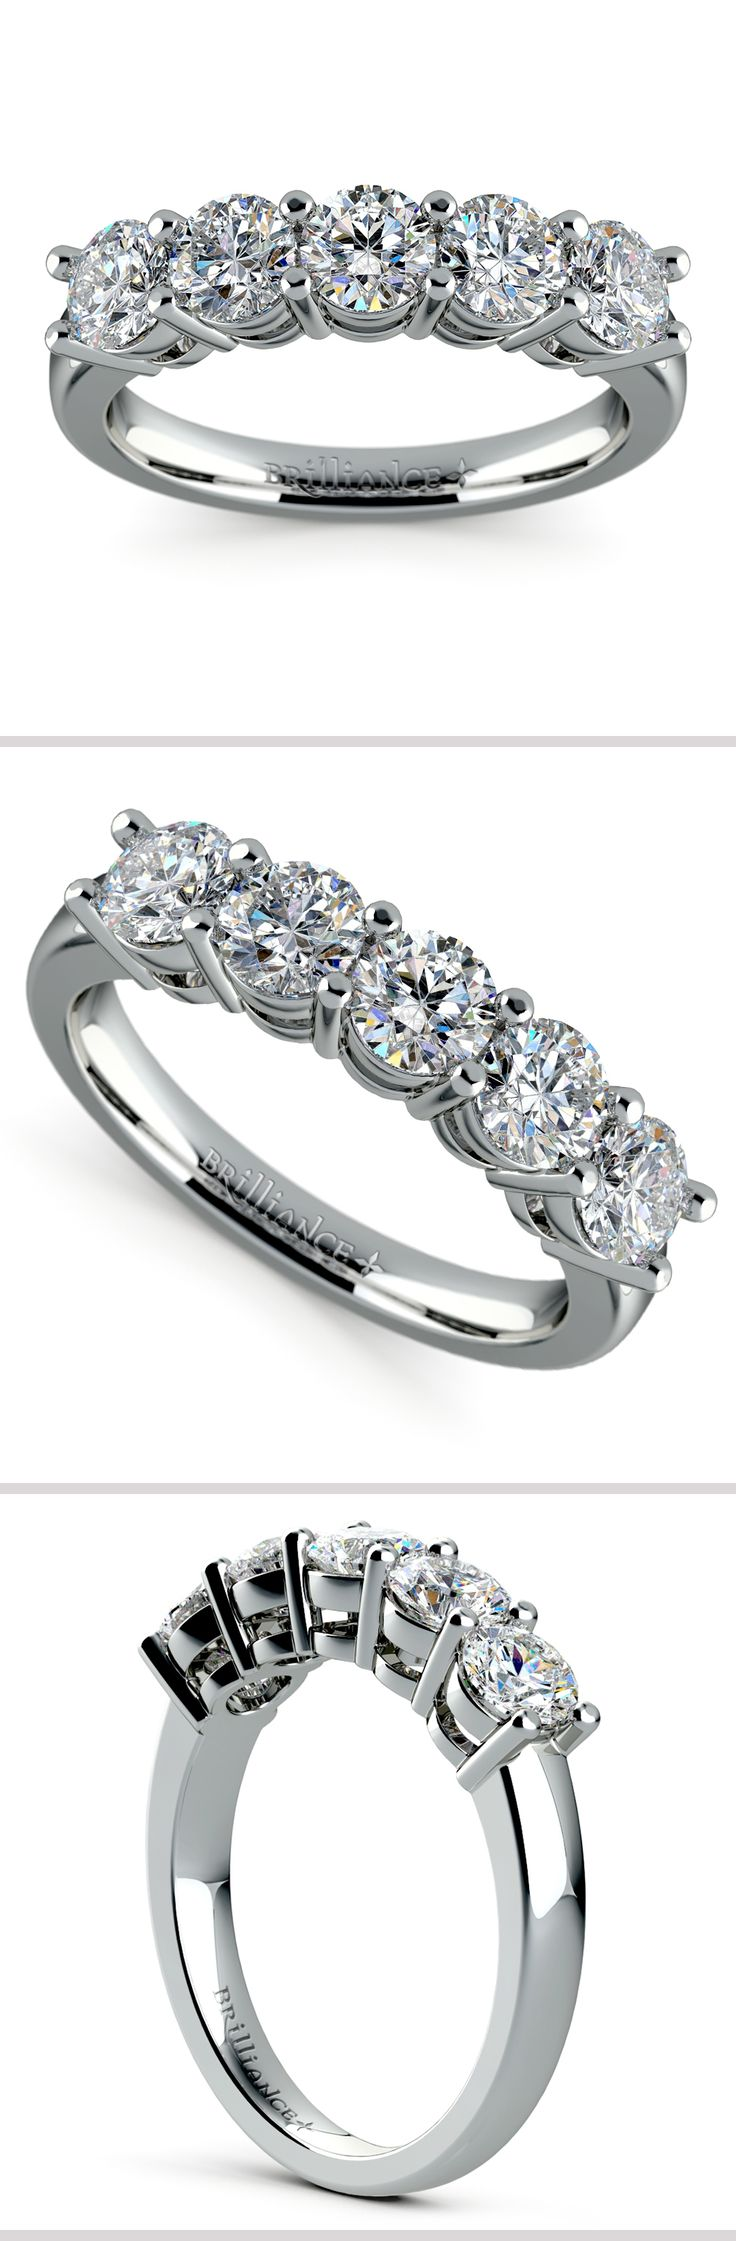 This classic diamond wedding band in 14k or 18k white gold features 5 round cut diamonds in a shared prong, open gallery setting